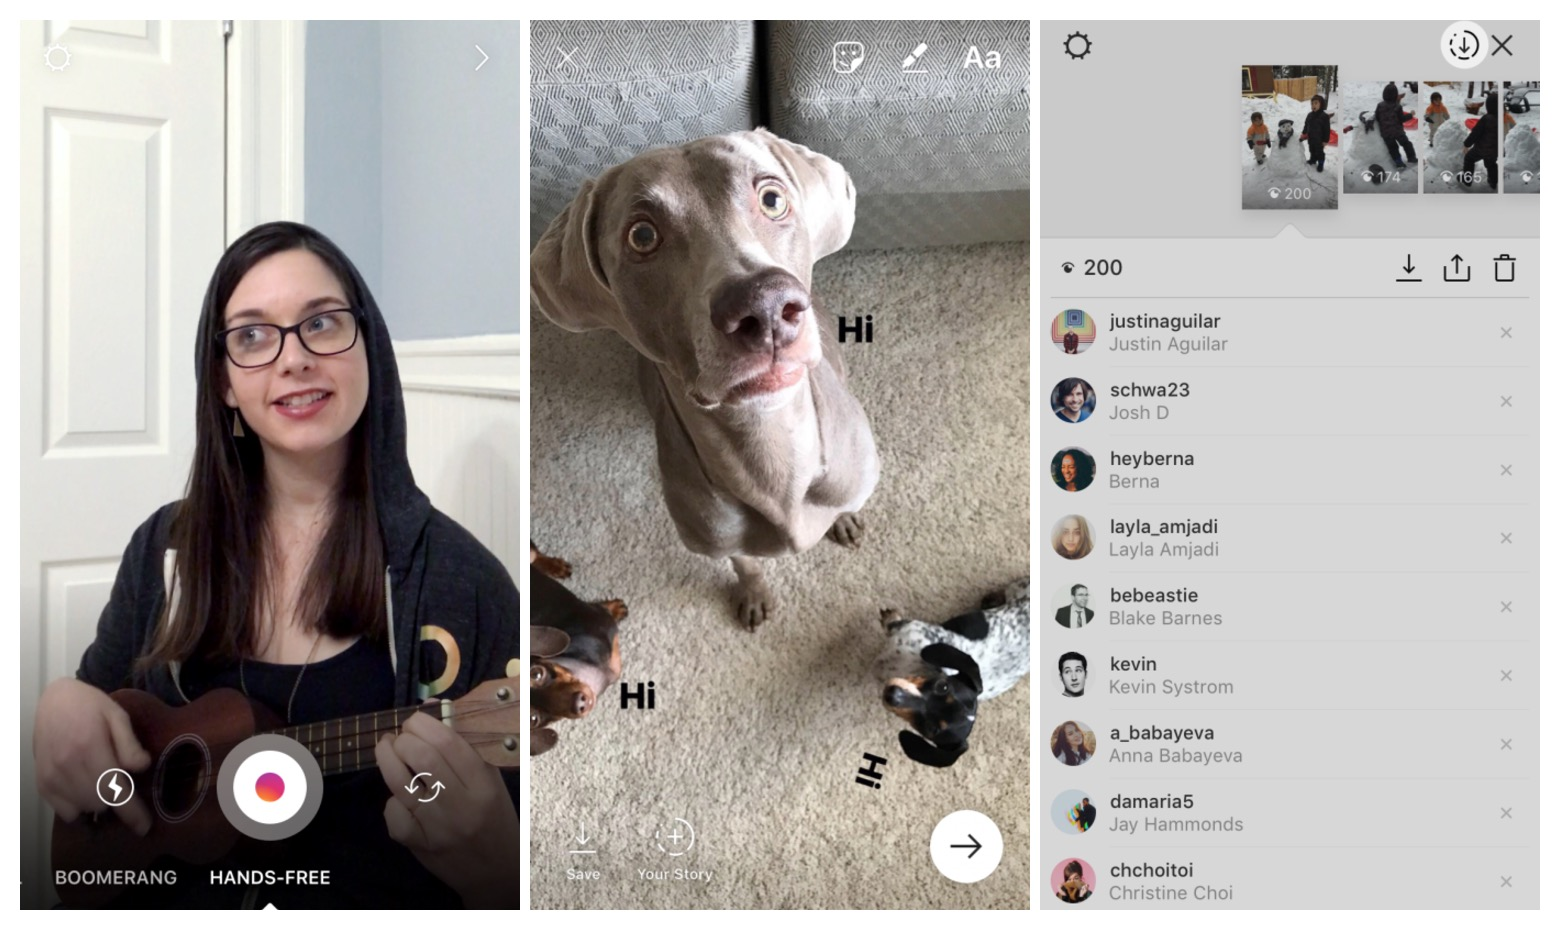 Instagram adds stickers and more Snapchat features